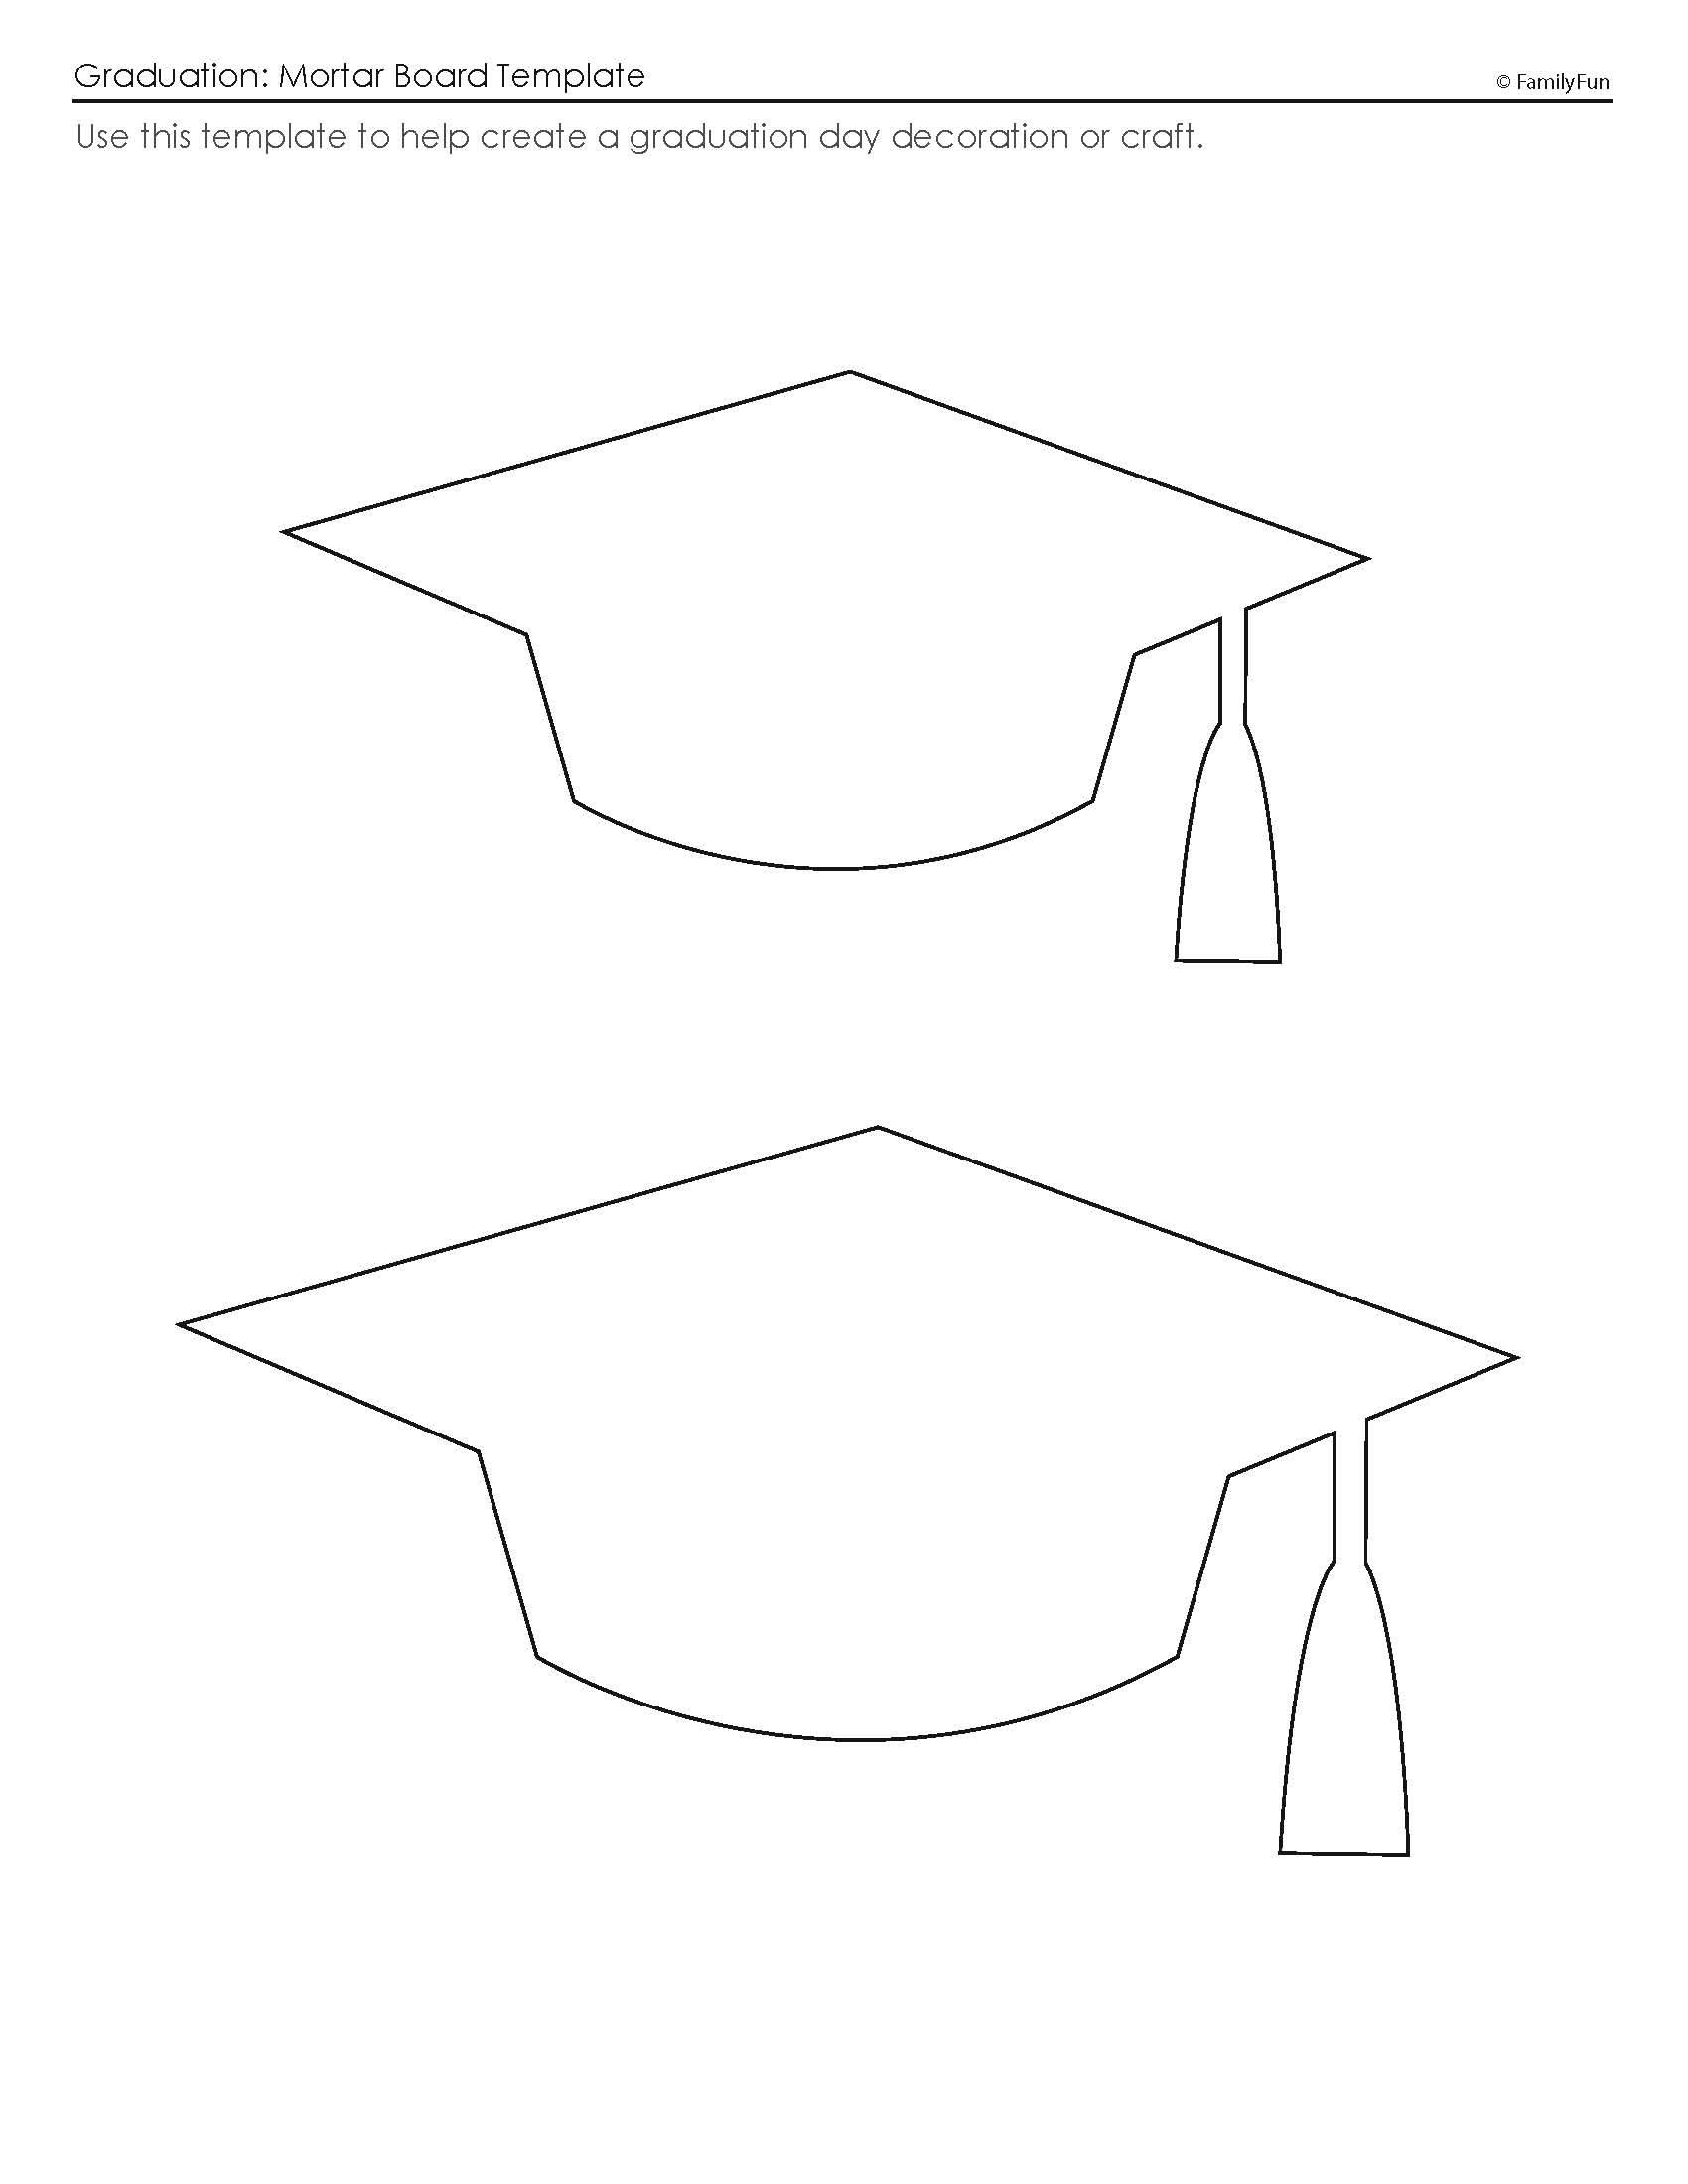 Customize Your Free Printable Mortar Board Template | Graduation - Graduation Cap Template Free Printable